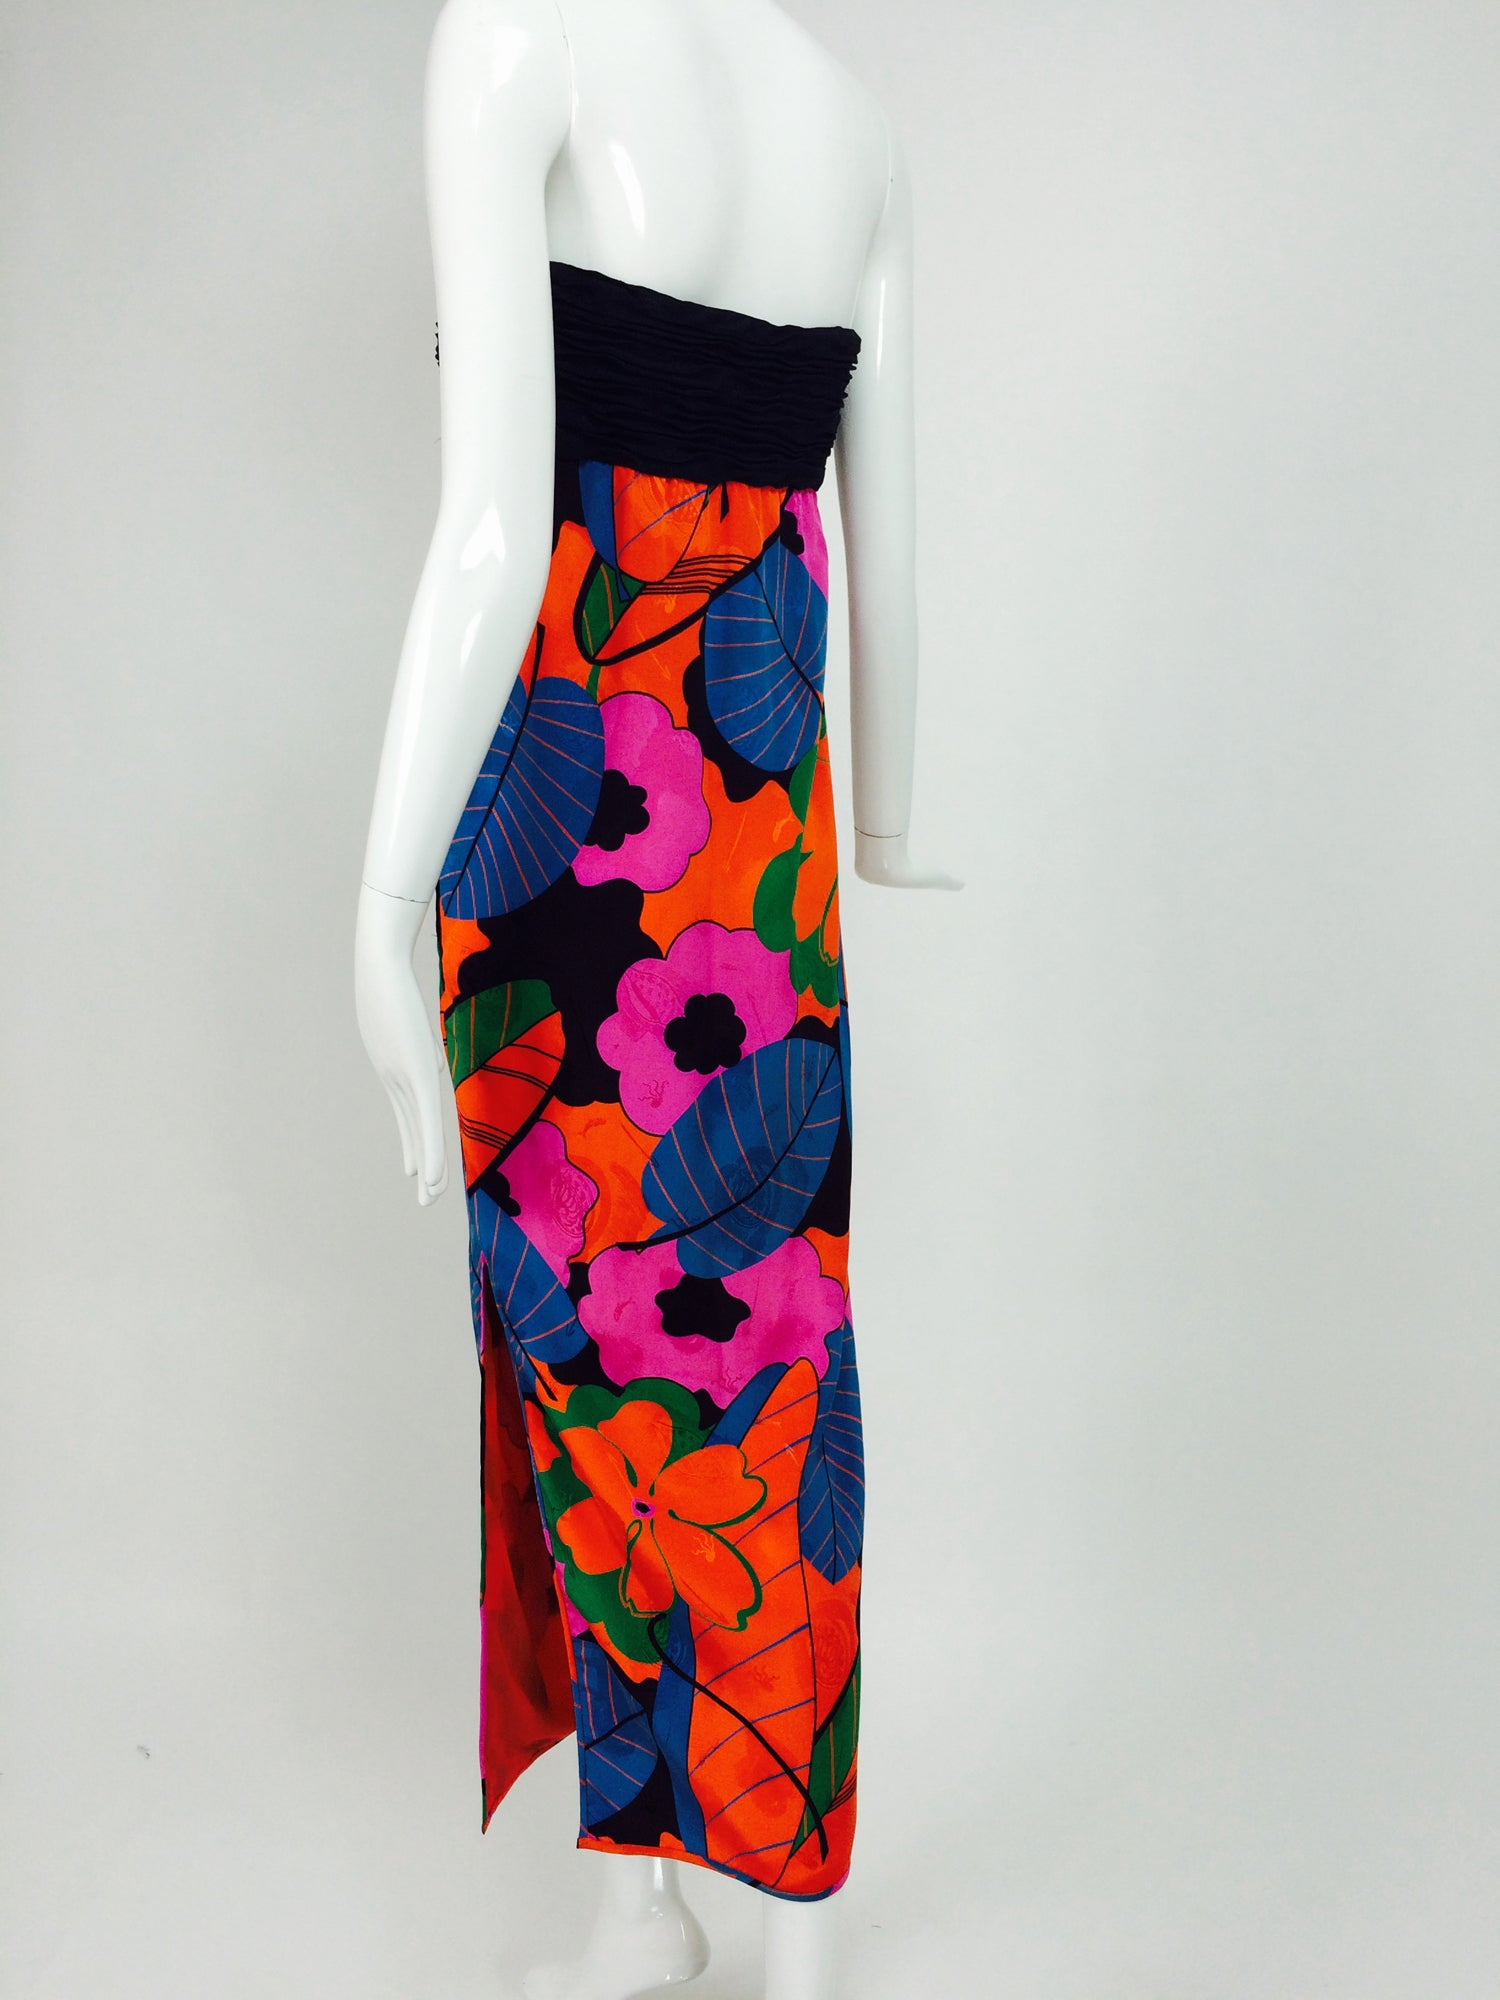 064bac34ec23f Emanuel Ungaro Parallele hot tropical print strapless maxi dress 1970s For  Sale at 1stdibs